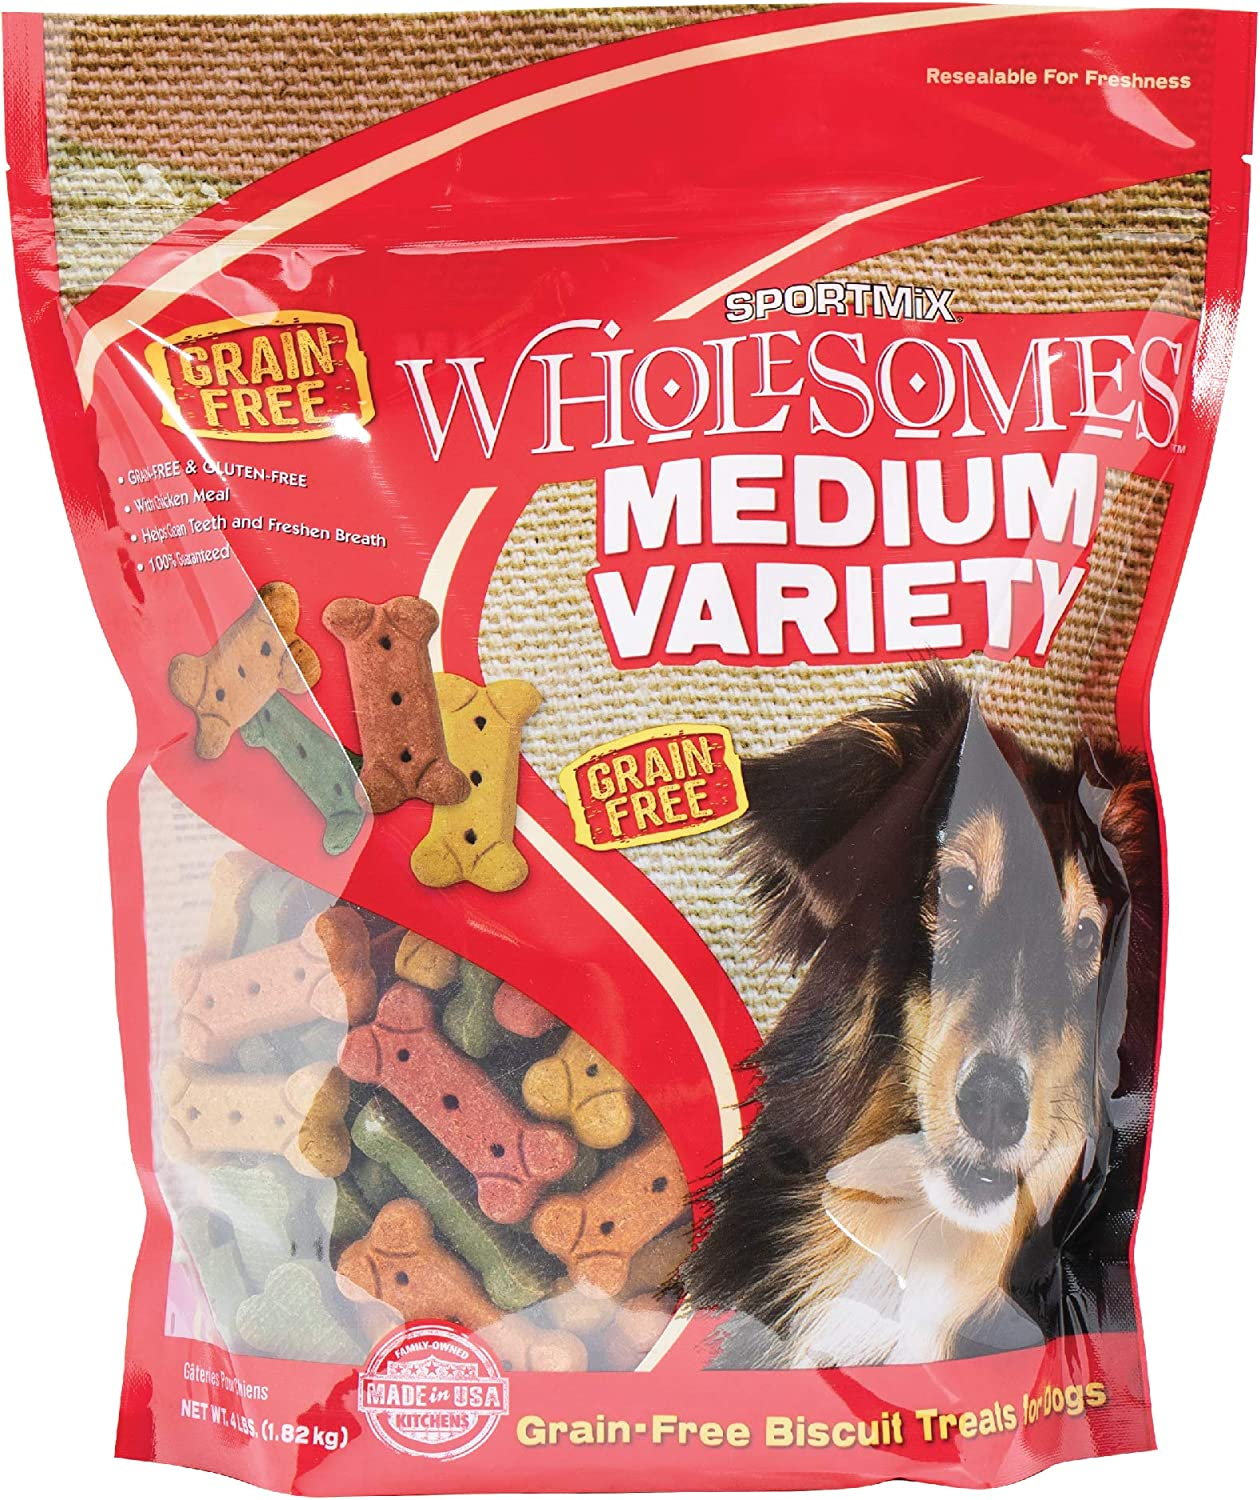 Sportmix Wholesomes Medium Variety Grain Free Dog Biscuit Treats, 4 Lb.